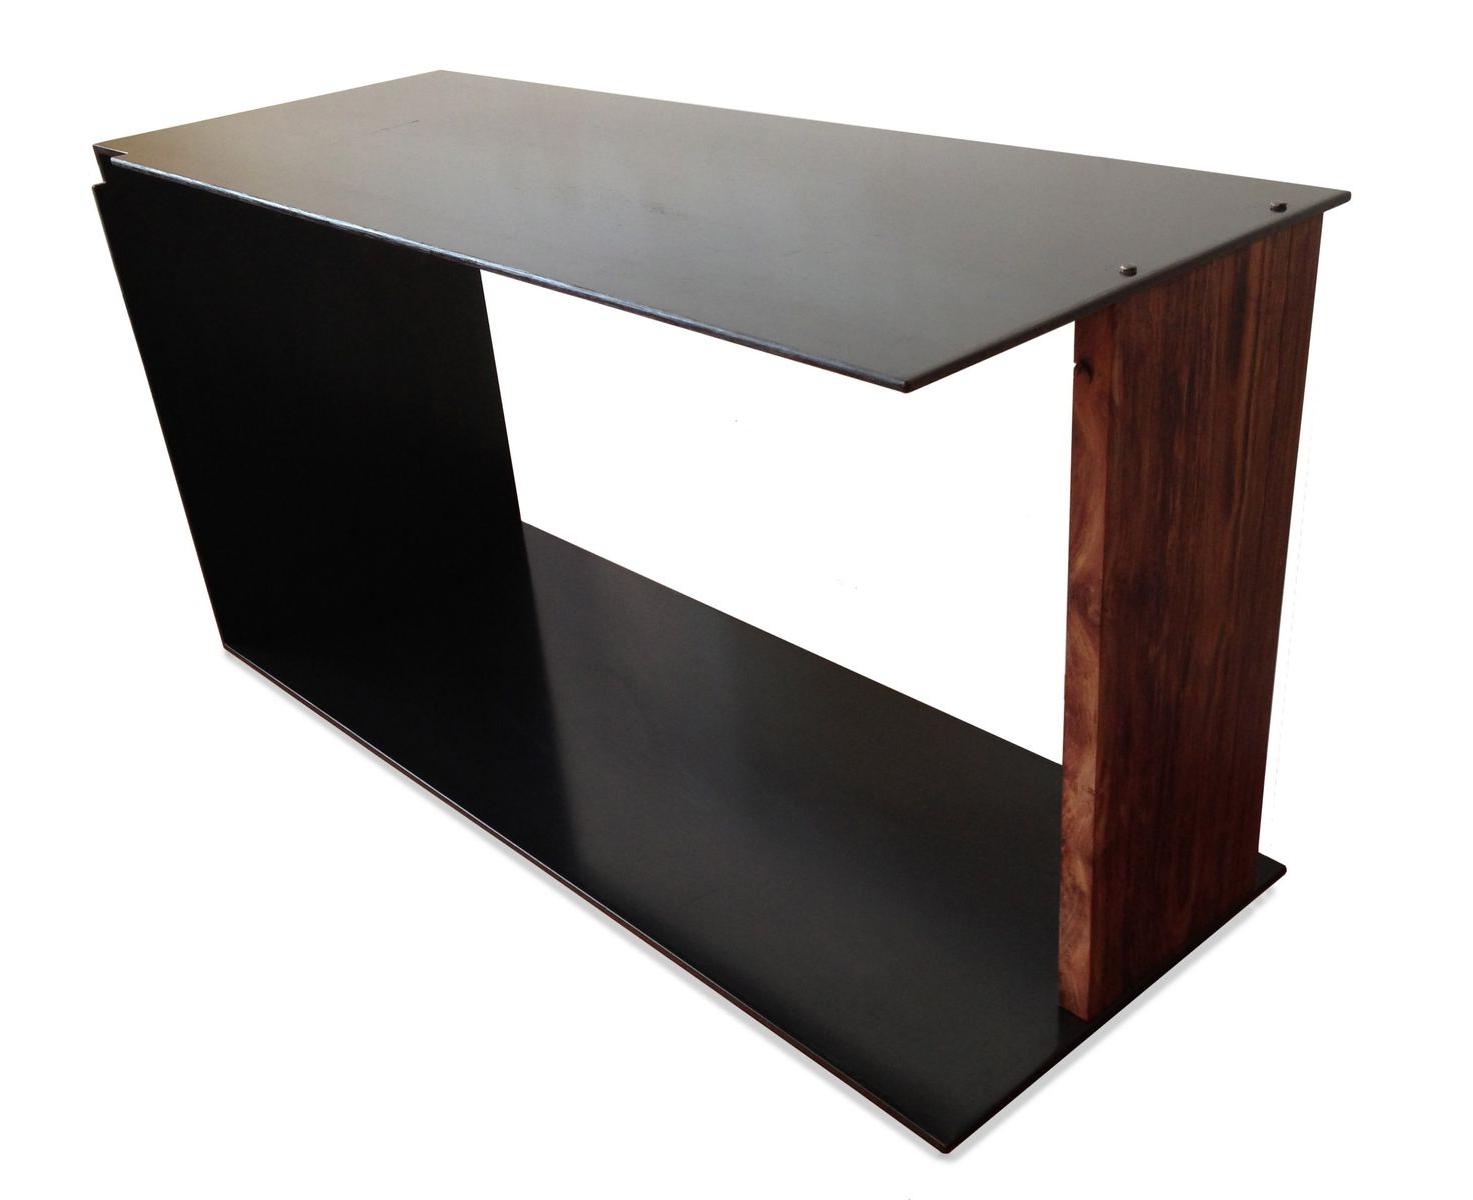 Newest Hand Crafted Szk Metals 'xy' Modern Minimalist Metal Coffee Table Regarding Minimalist Coffee Tables (View 10 of 20)